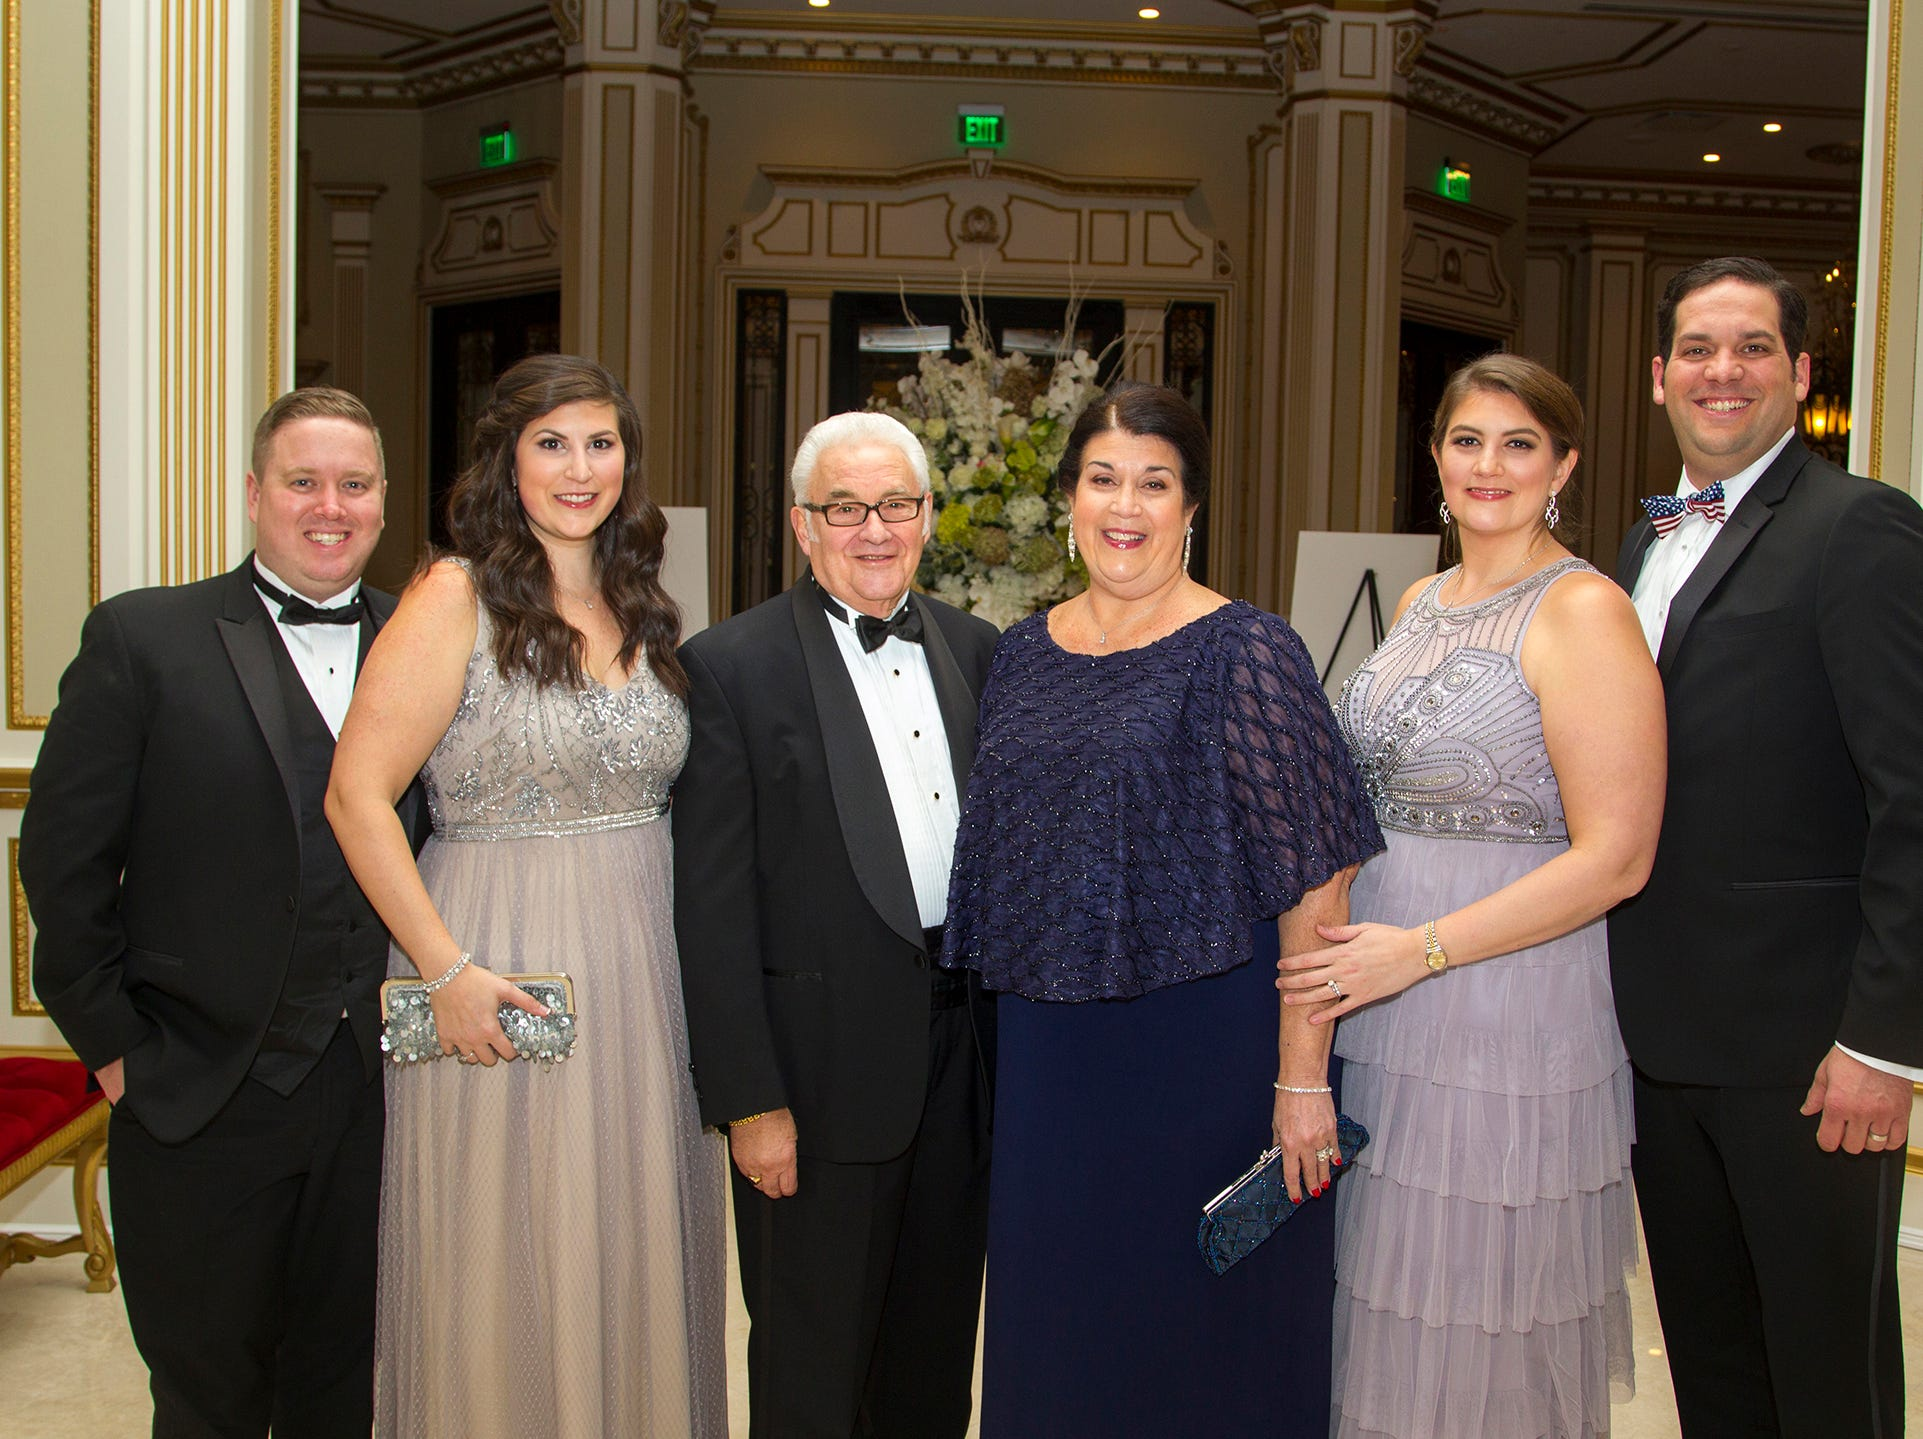 Jason and Gina Desch, Sandro and Maria Mediago, Alessandra and James Agnew. The 72nd Annual Valley Ball gala at The Legacy Castle in Pompton Plains. 11/16/2018